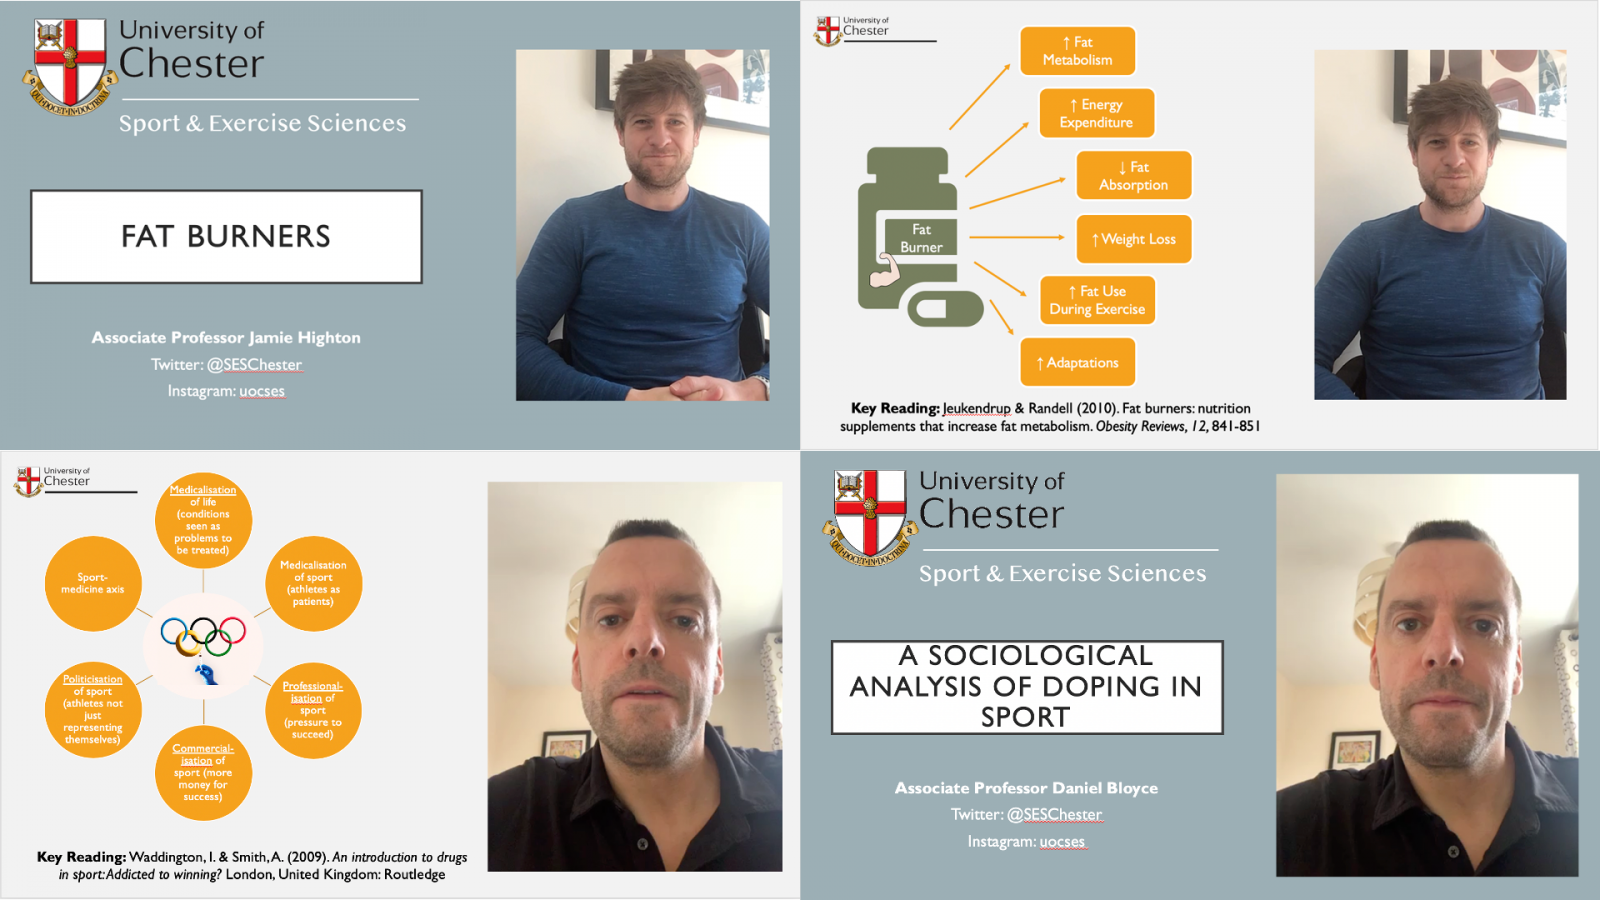 Lecturers from the Department of Sport and Exercise Sciences at the University of Chester have developed a series of online pocket lectures.